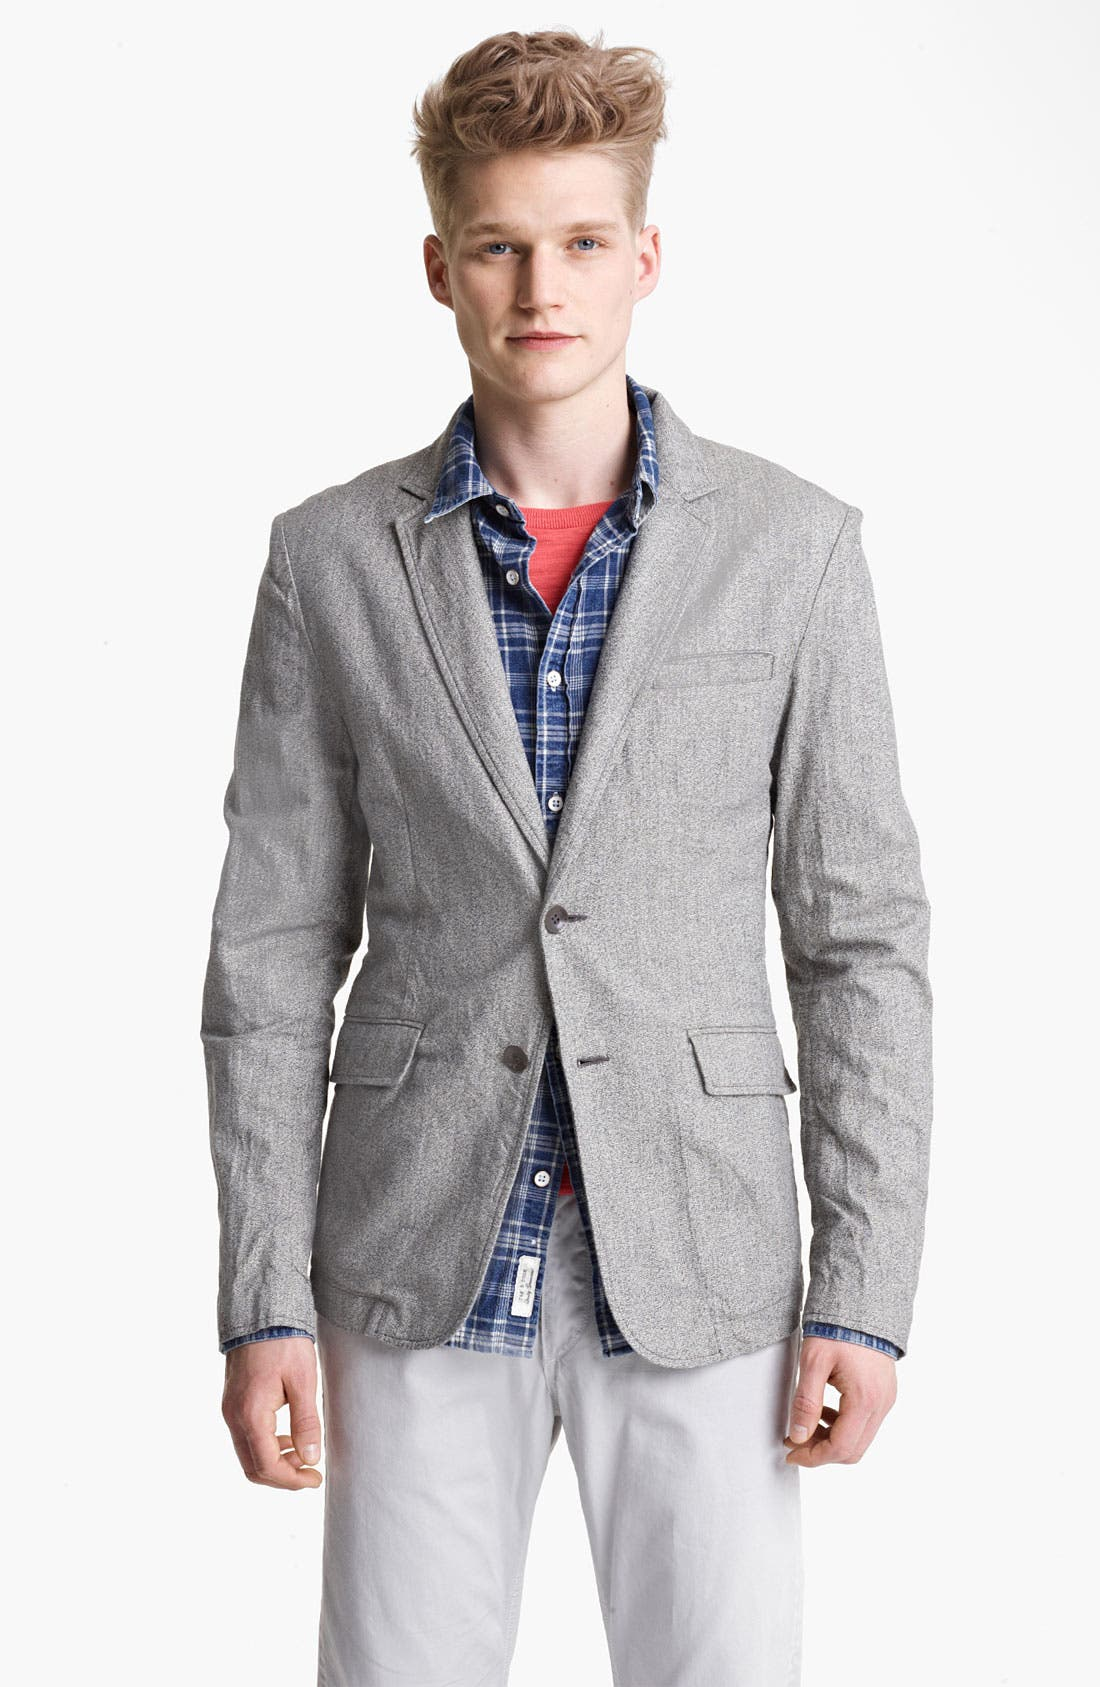 Alternate Image 1 Selected - rag & bone 'Phillips' Cotton & Linen Sportcoat